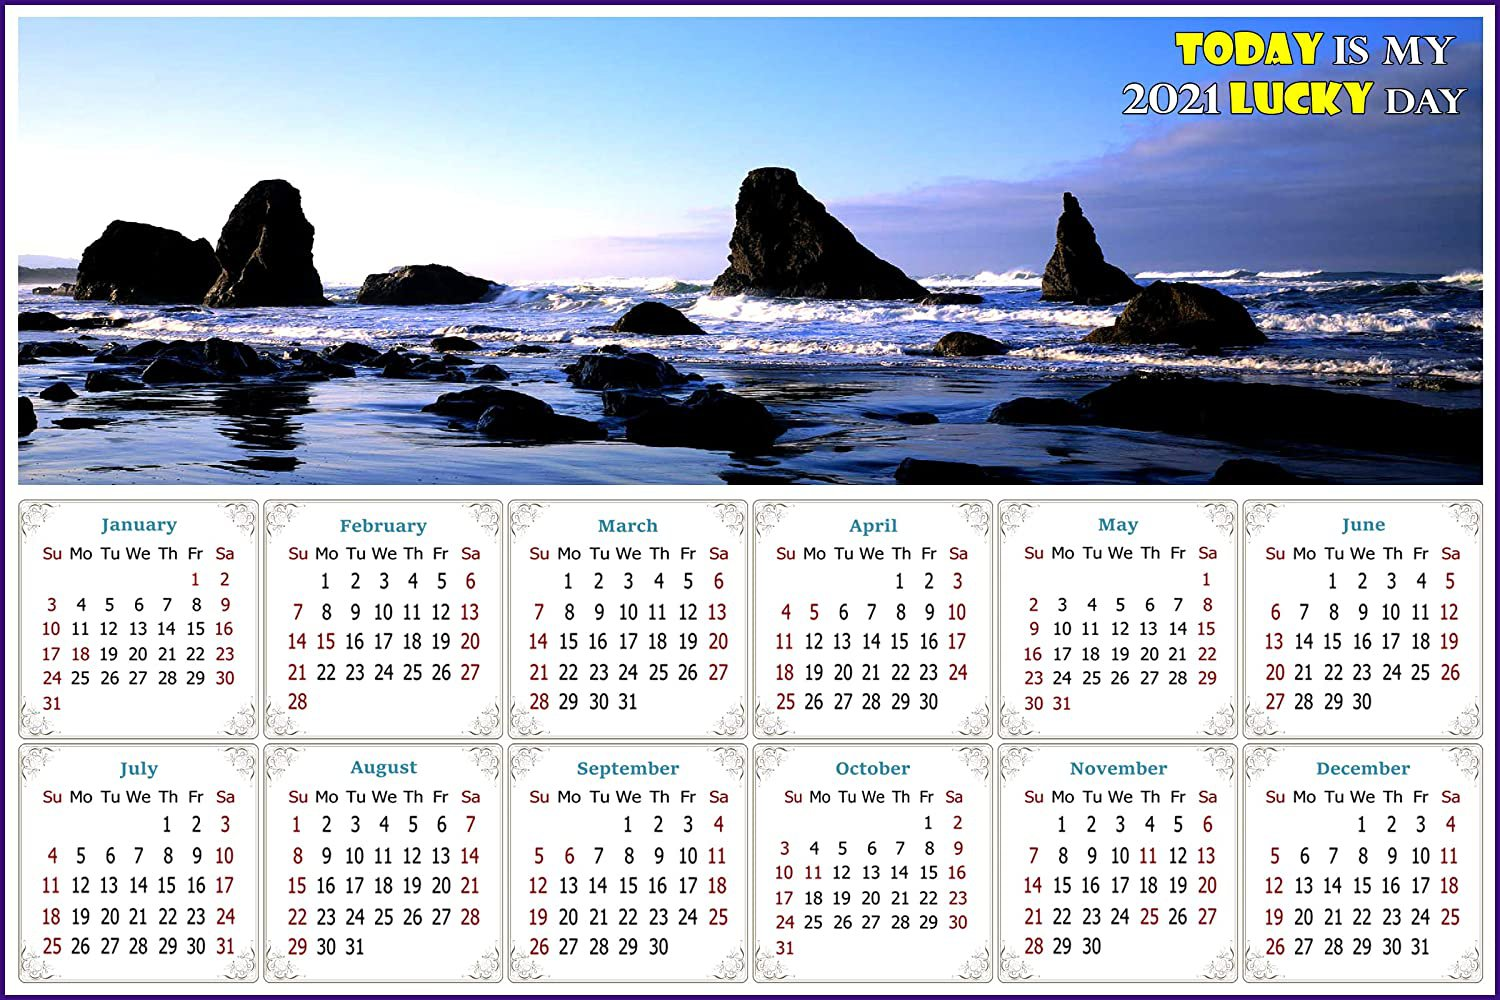 2021 Magnetic Calendar - Today is My Lucky Day - (Sea Stacks Near Bandon)